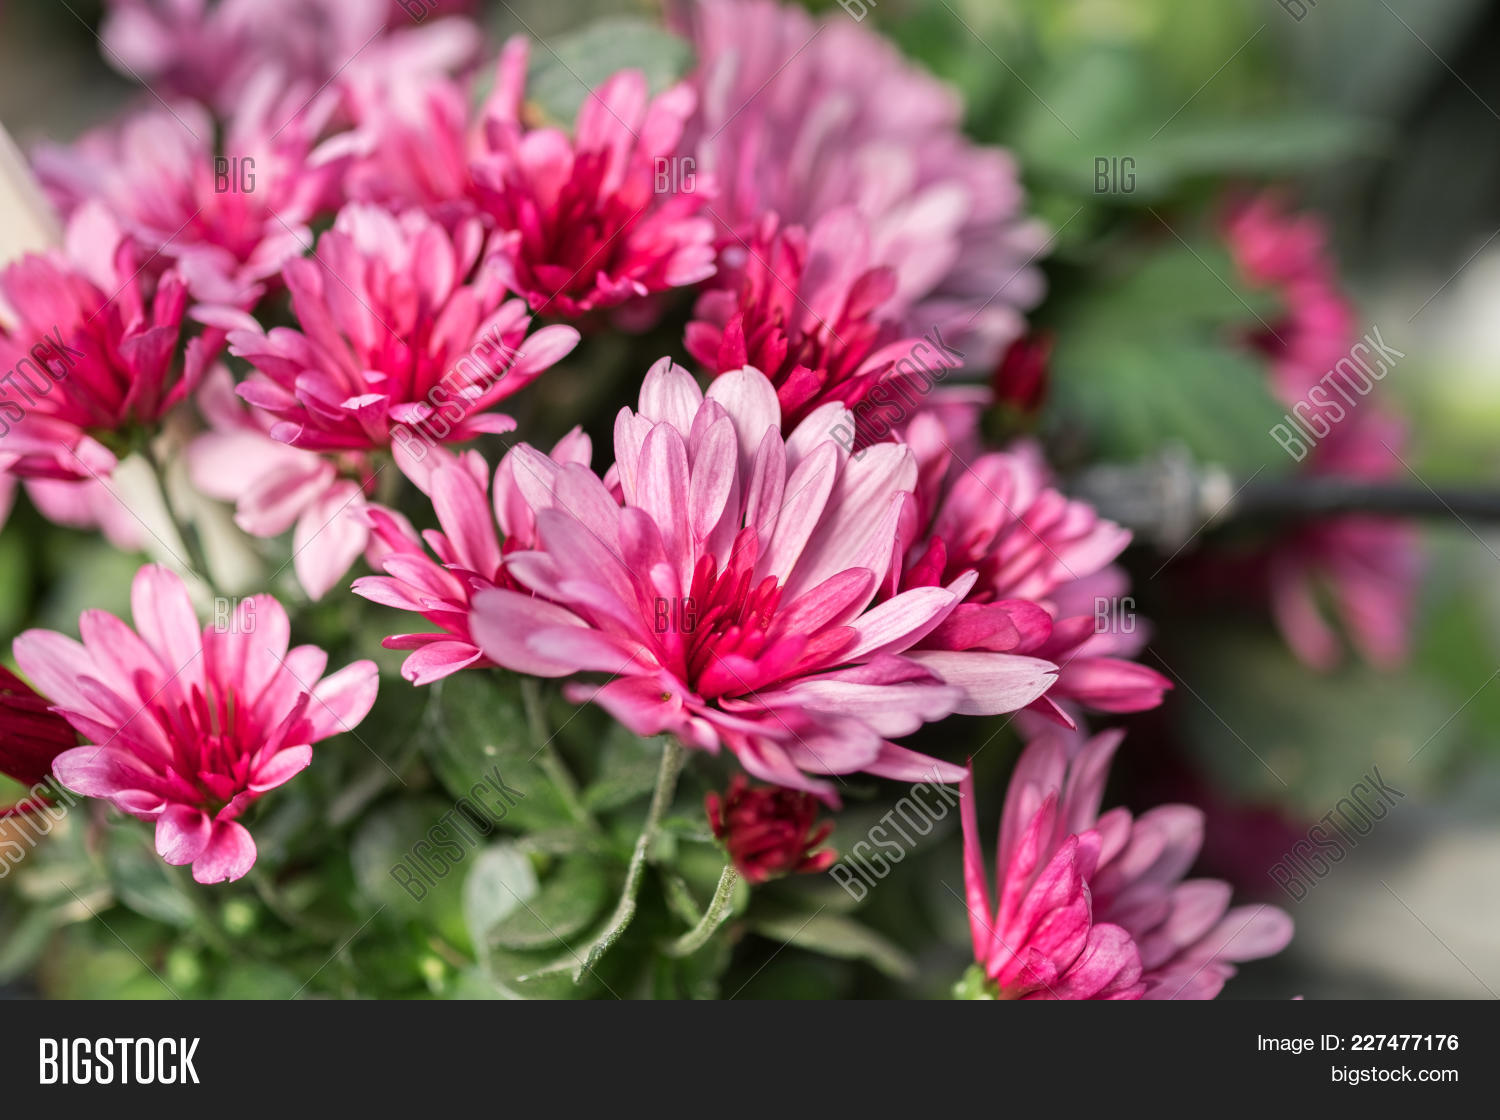 A Macro Shot Of The Pink Chrysanthemums Or Mums Or Chrysanths